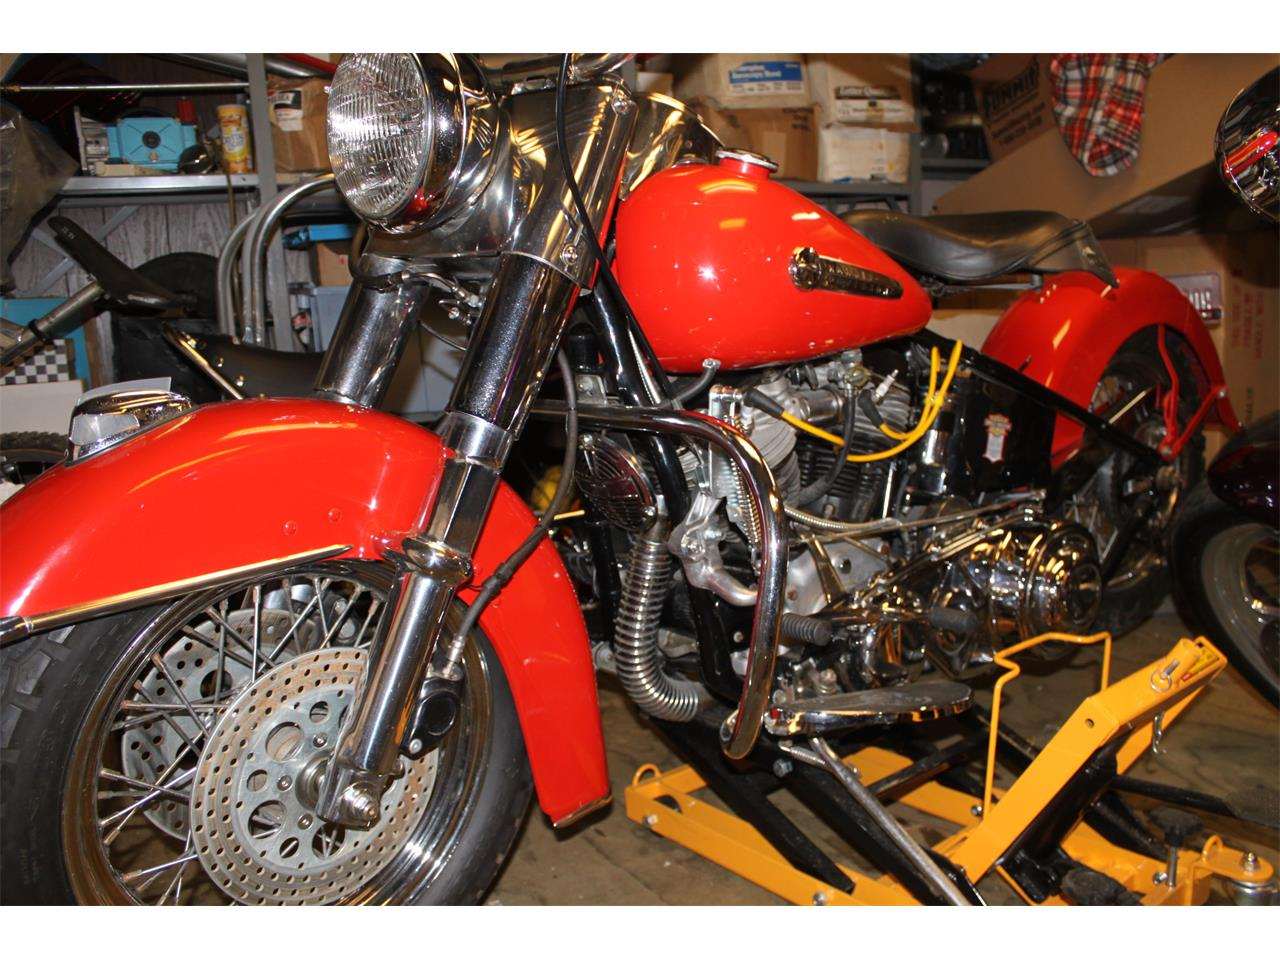 1950 Harley-Davidson Motorcycle for sale in Carnation, WA – photo 12